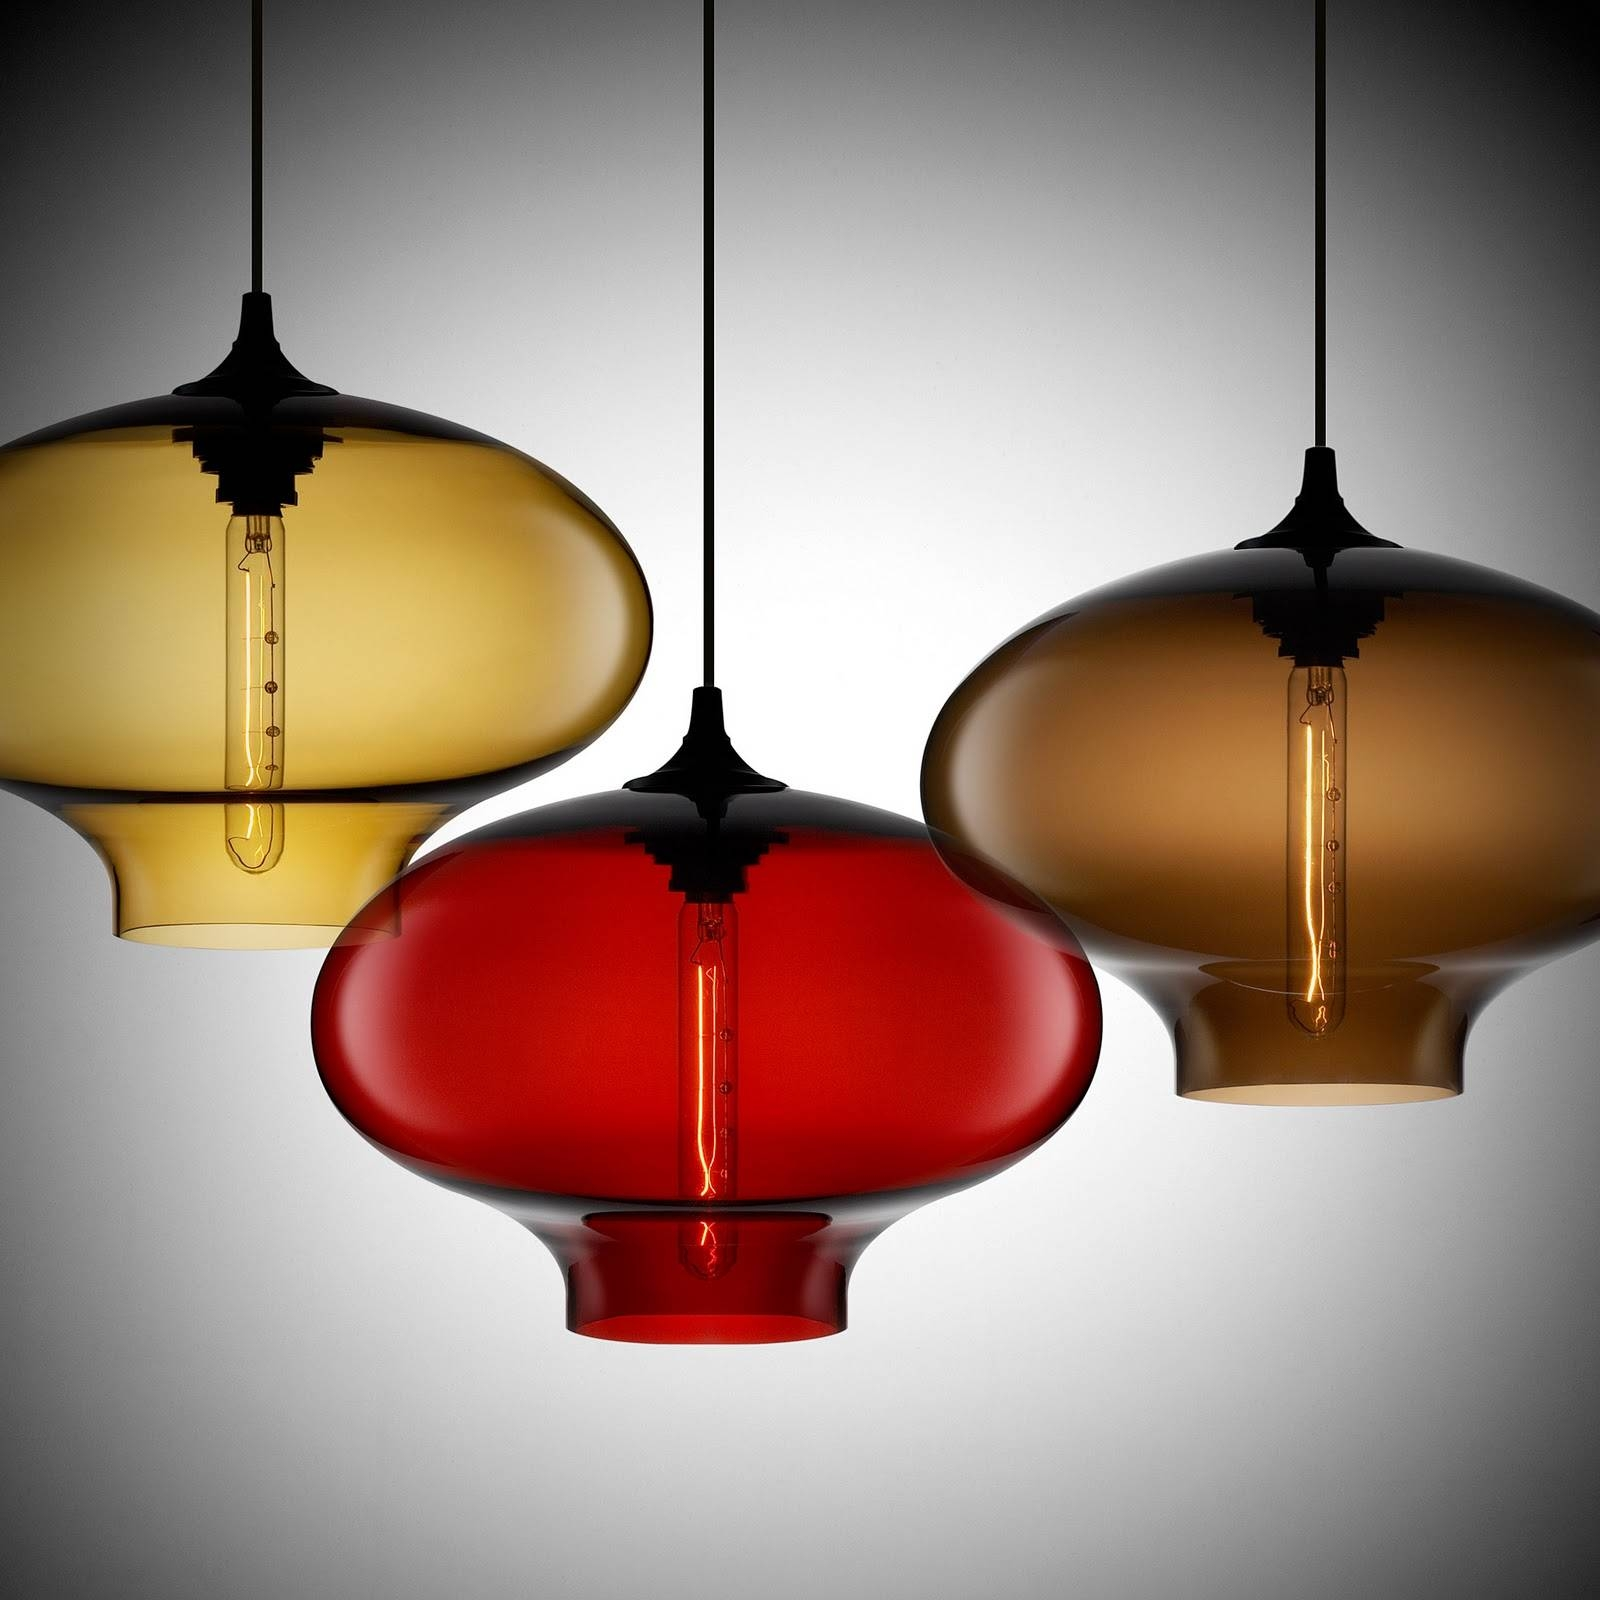 Lynn Morris Interiors : Artistic Pendant Lights For Unique for Artisan Glass Pendant Lights (Image 18 of 23)